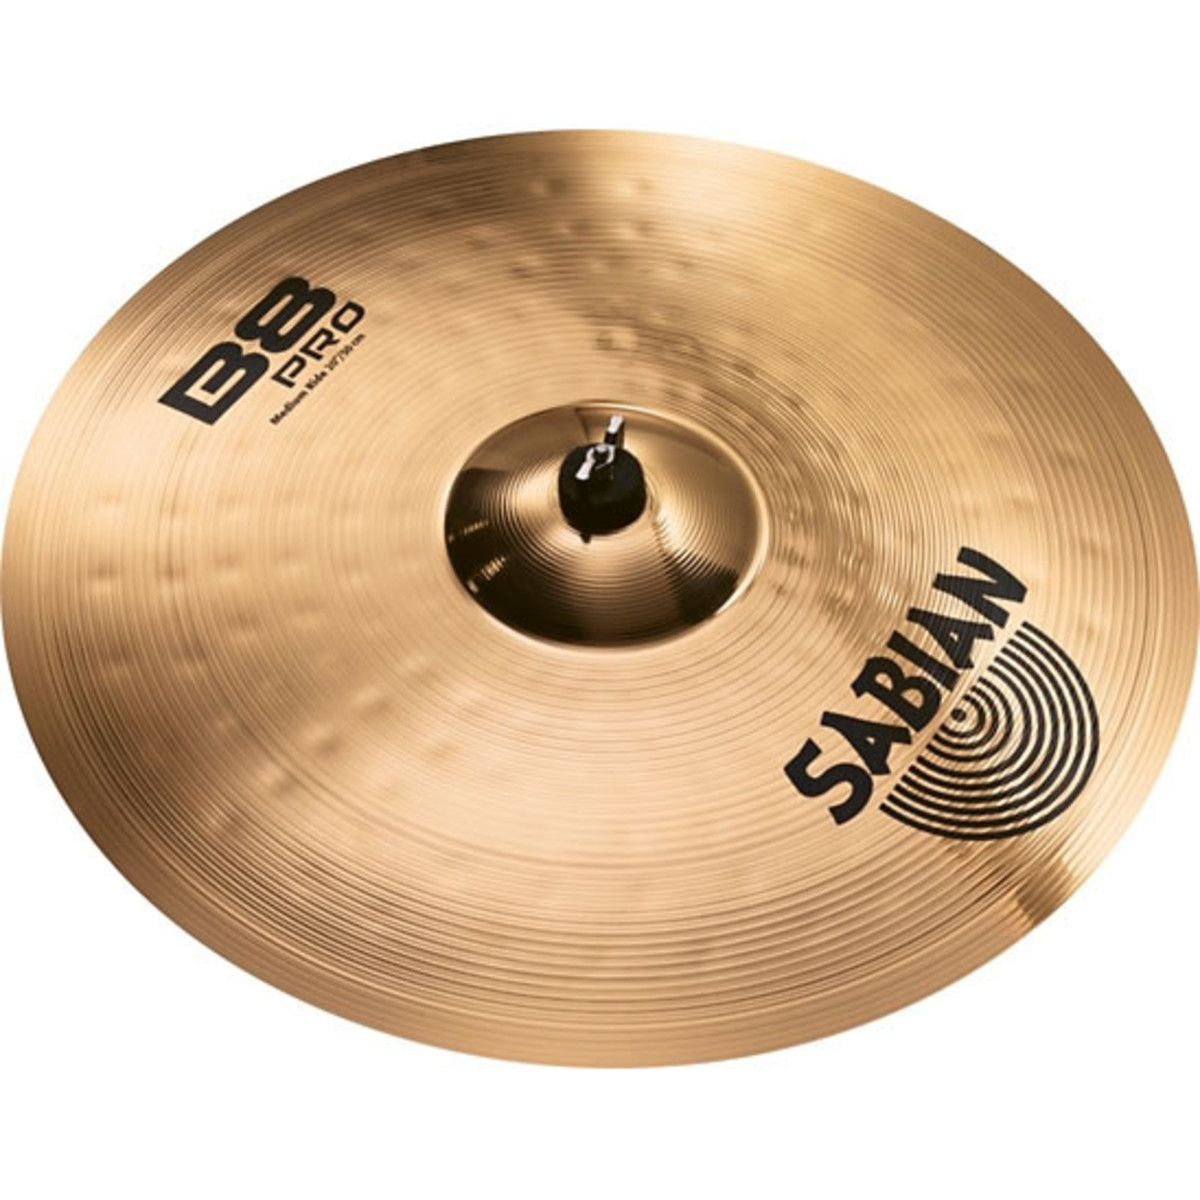 sabian b8 pro 20 39 39 rock ride cymbal at. Black Bedroom Furniture Sets. Home Design Ideas